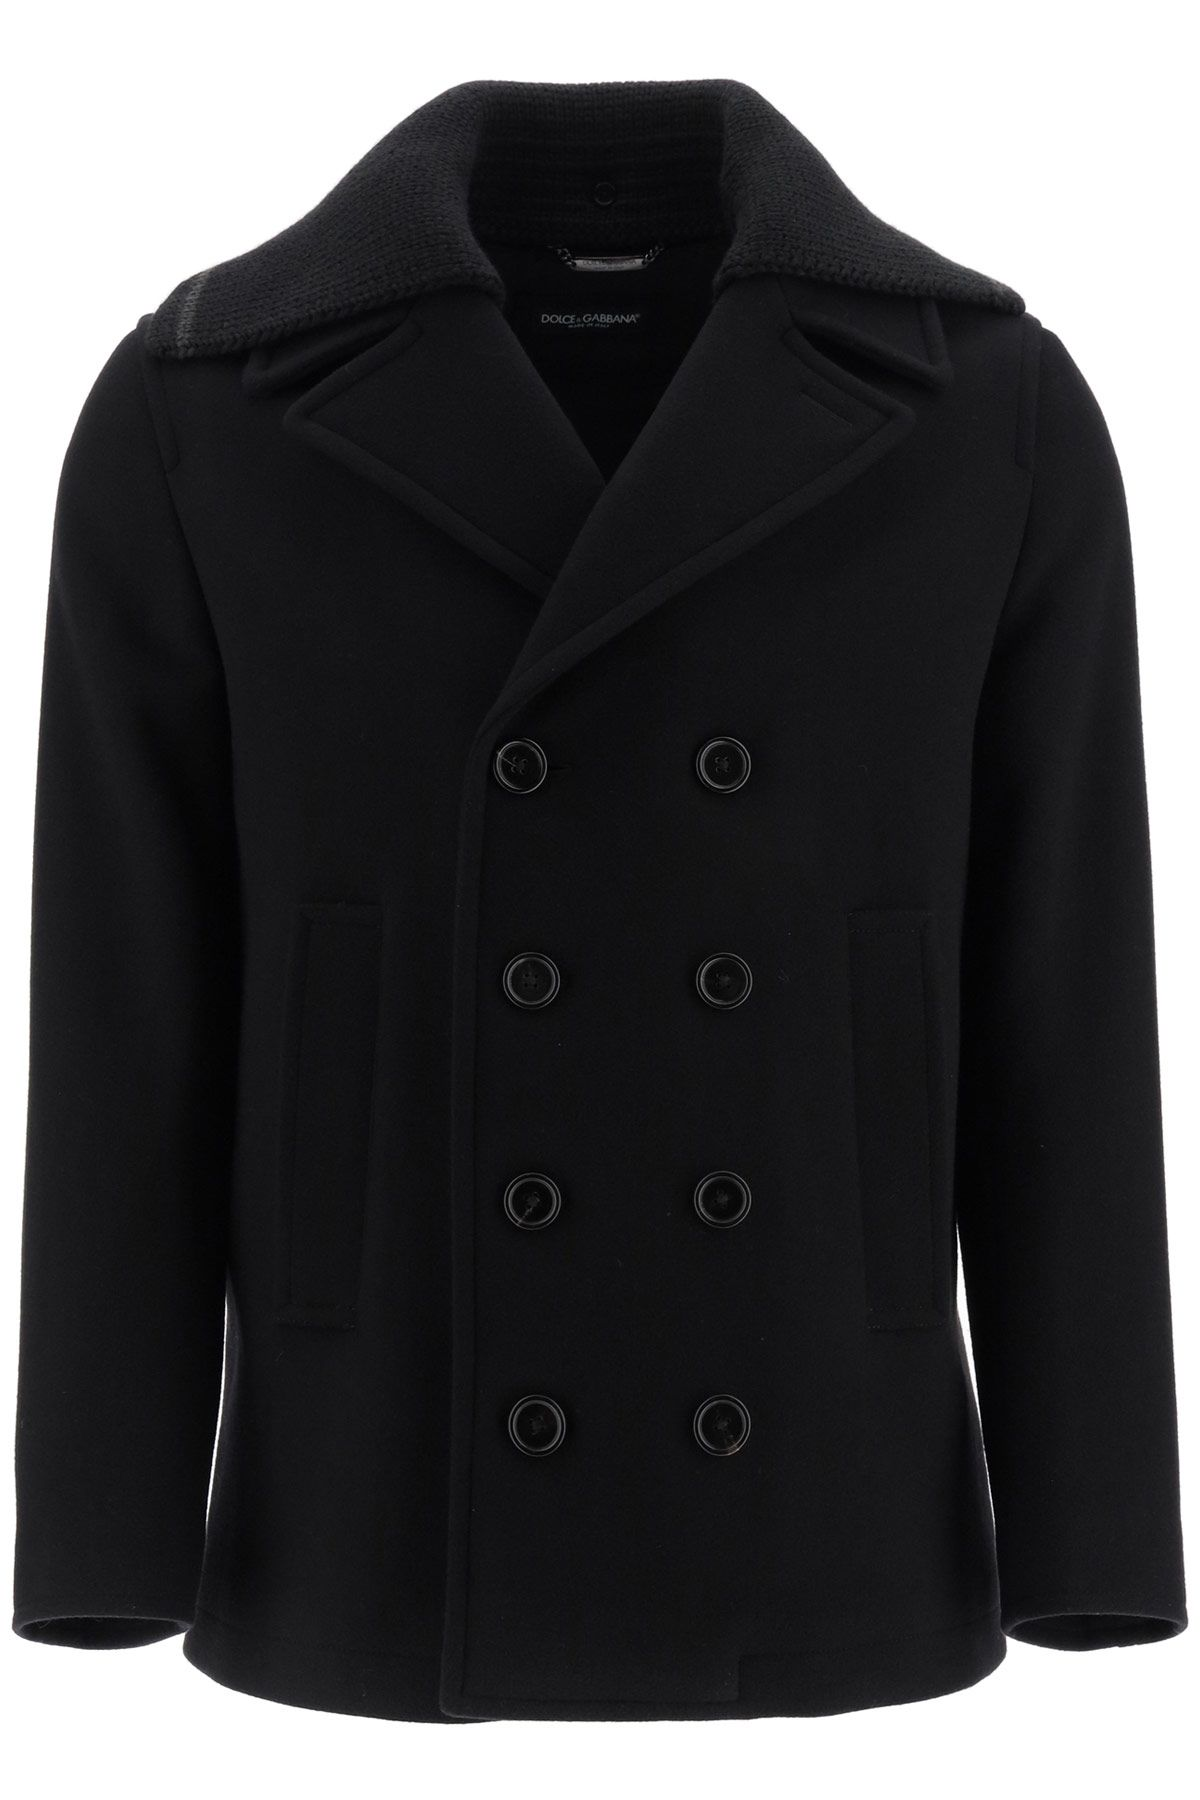 dolce & gabbana clothing men peacoat with wool collar